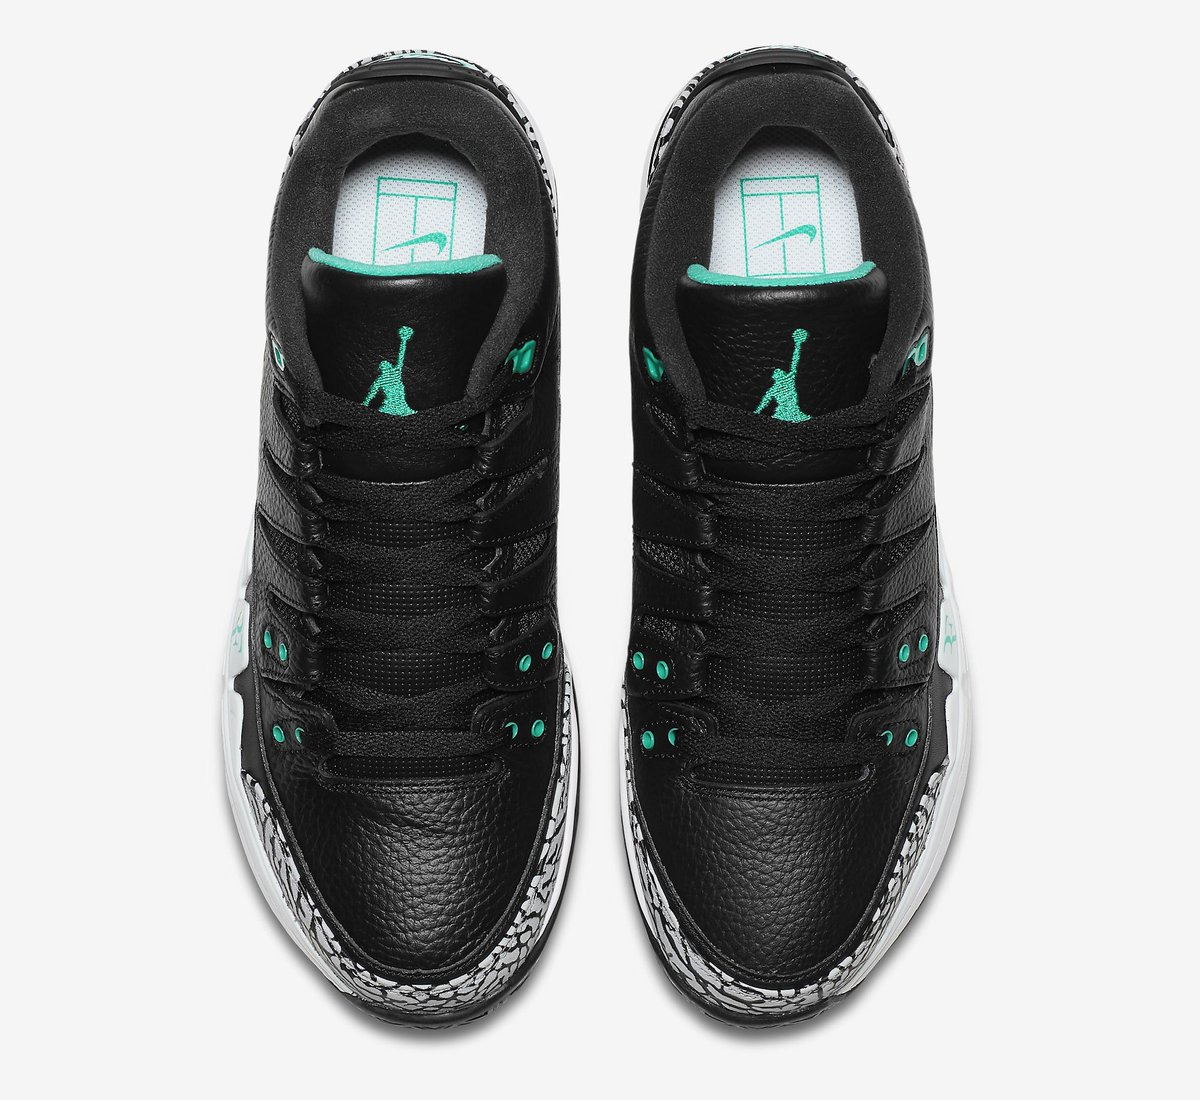 1807a4337b01 a new roger federer x aj3 sneaker is coming this time with atmos vibes